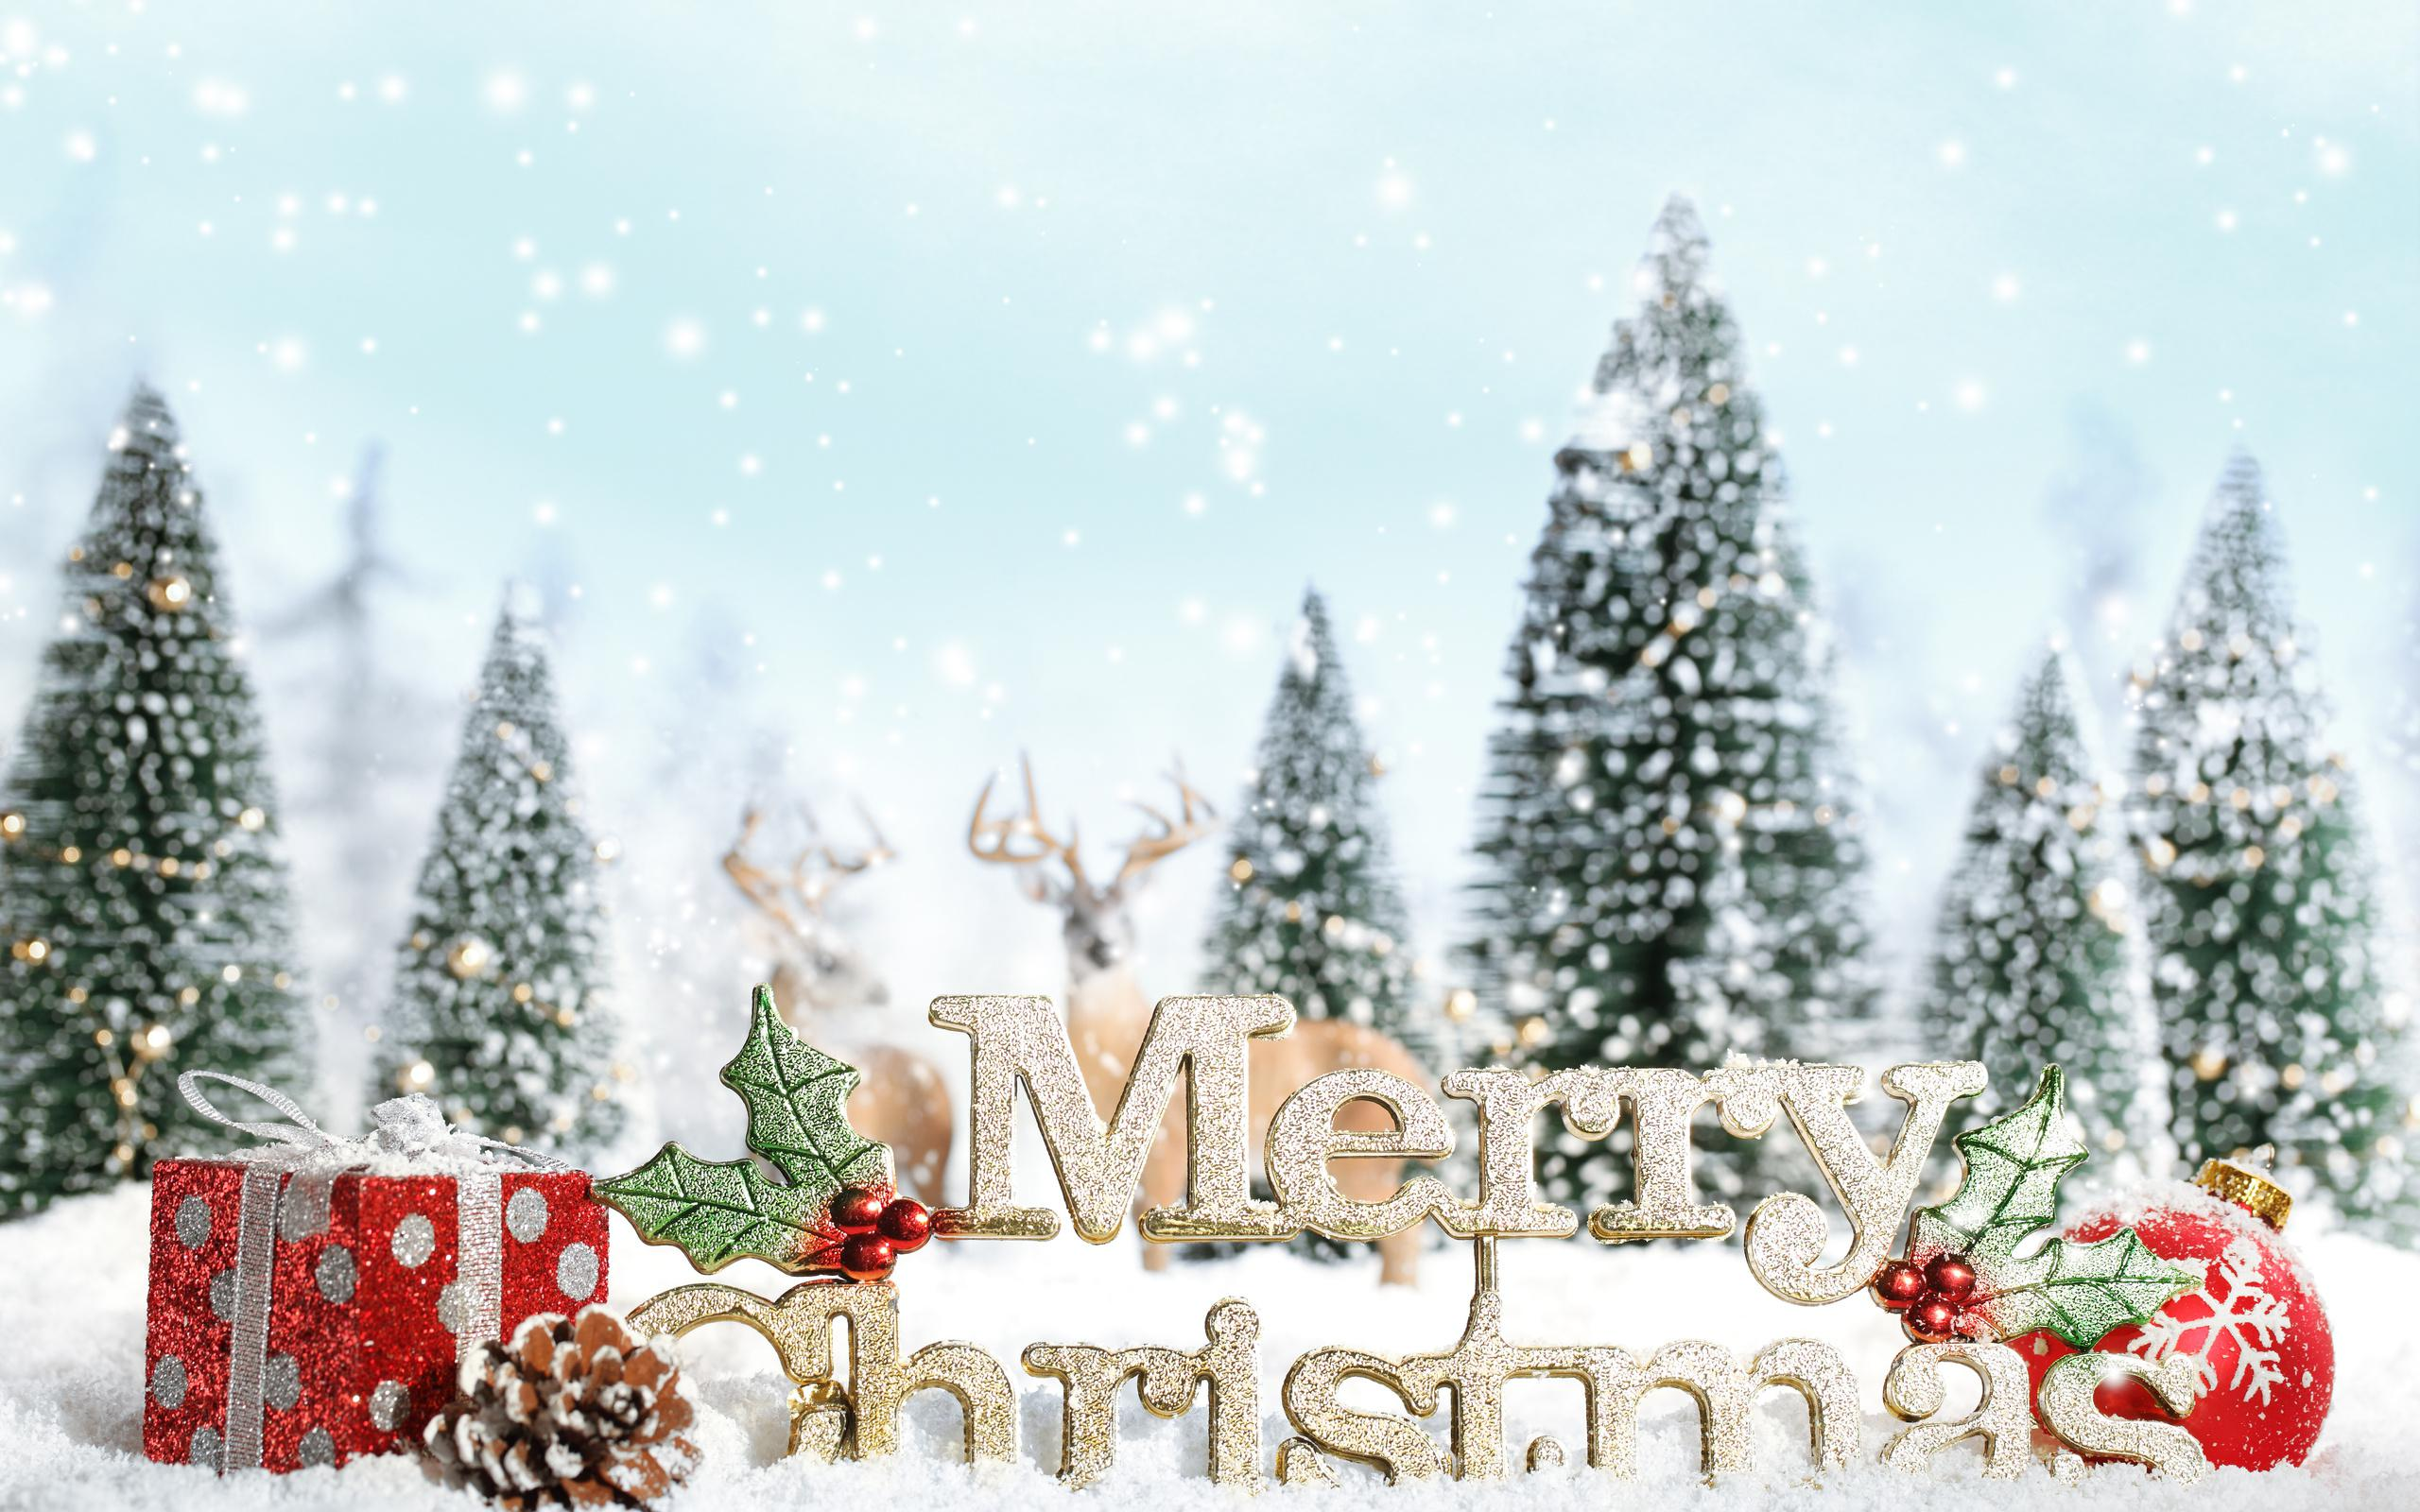 merry christmas wallpaper winter - photo #9